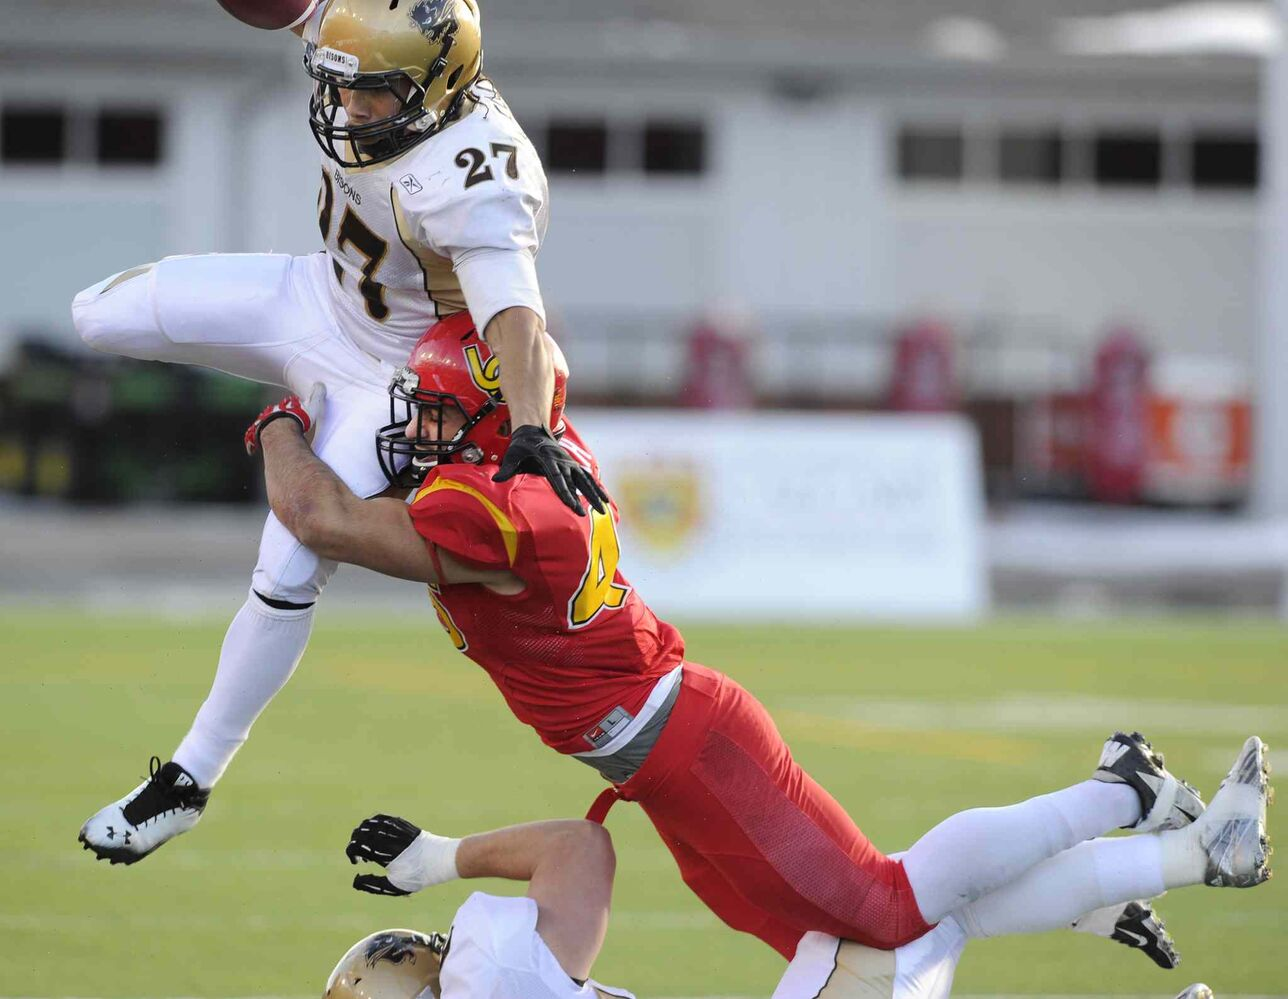 Kienan LaFrance (left) is tackled by Cory Roboch of the DInos during the first half. (Larry MacDougal / The Canadian Press)